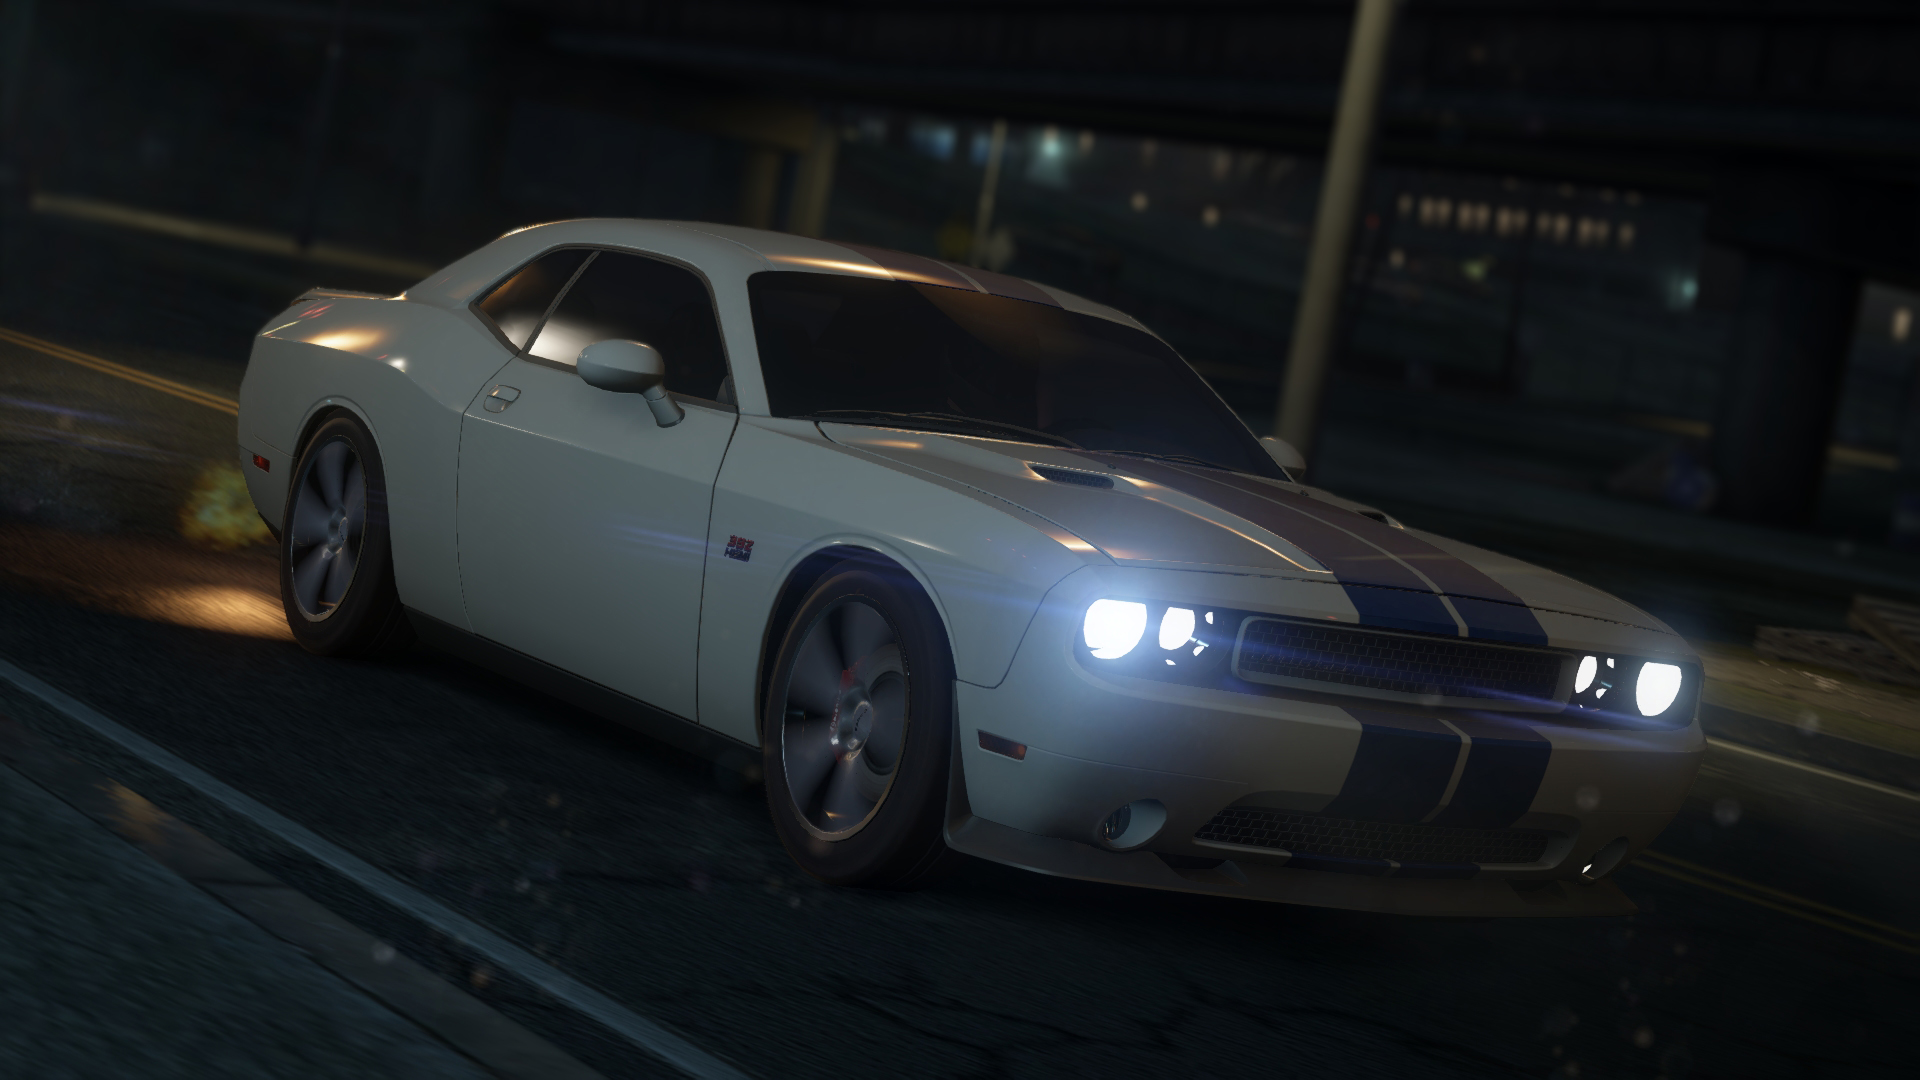 Dodge challenger srt8 392 need for speed wiki fandom powered by challenger srt8 392 malvernweather Choice Image